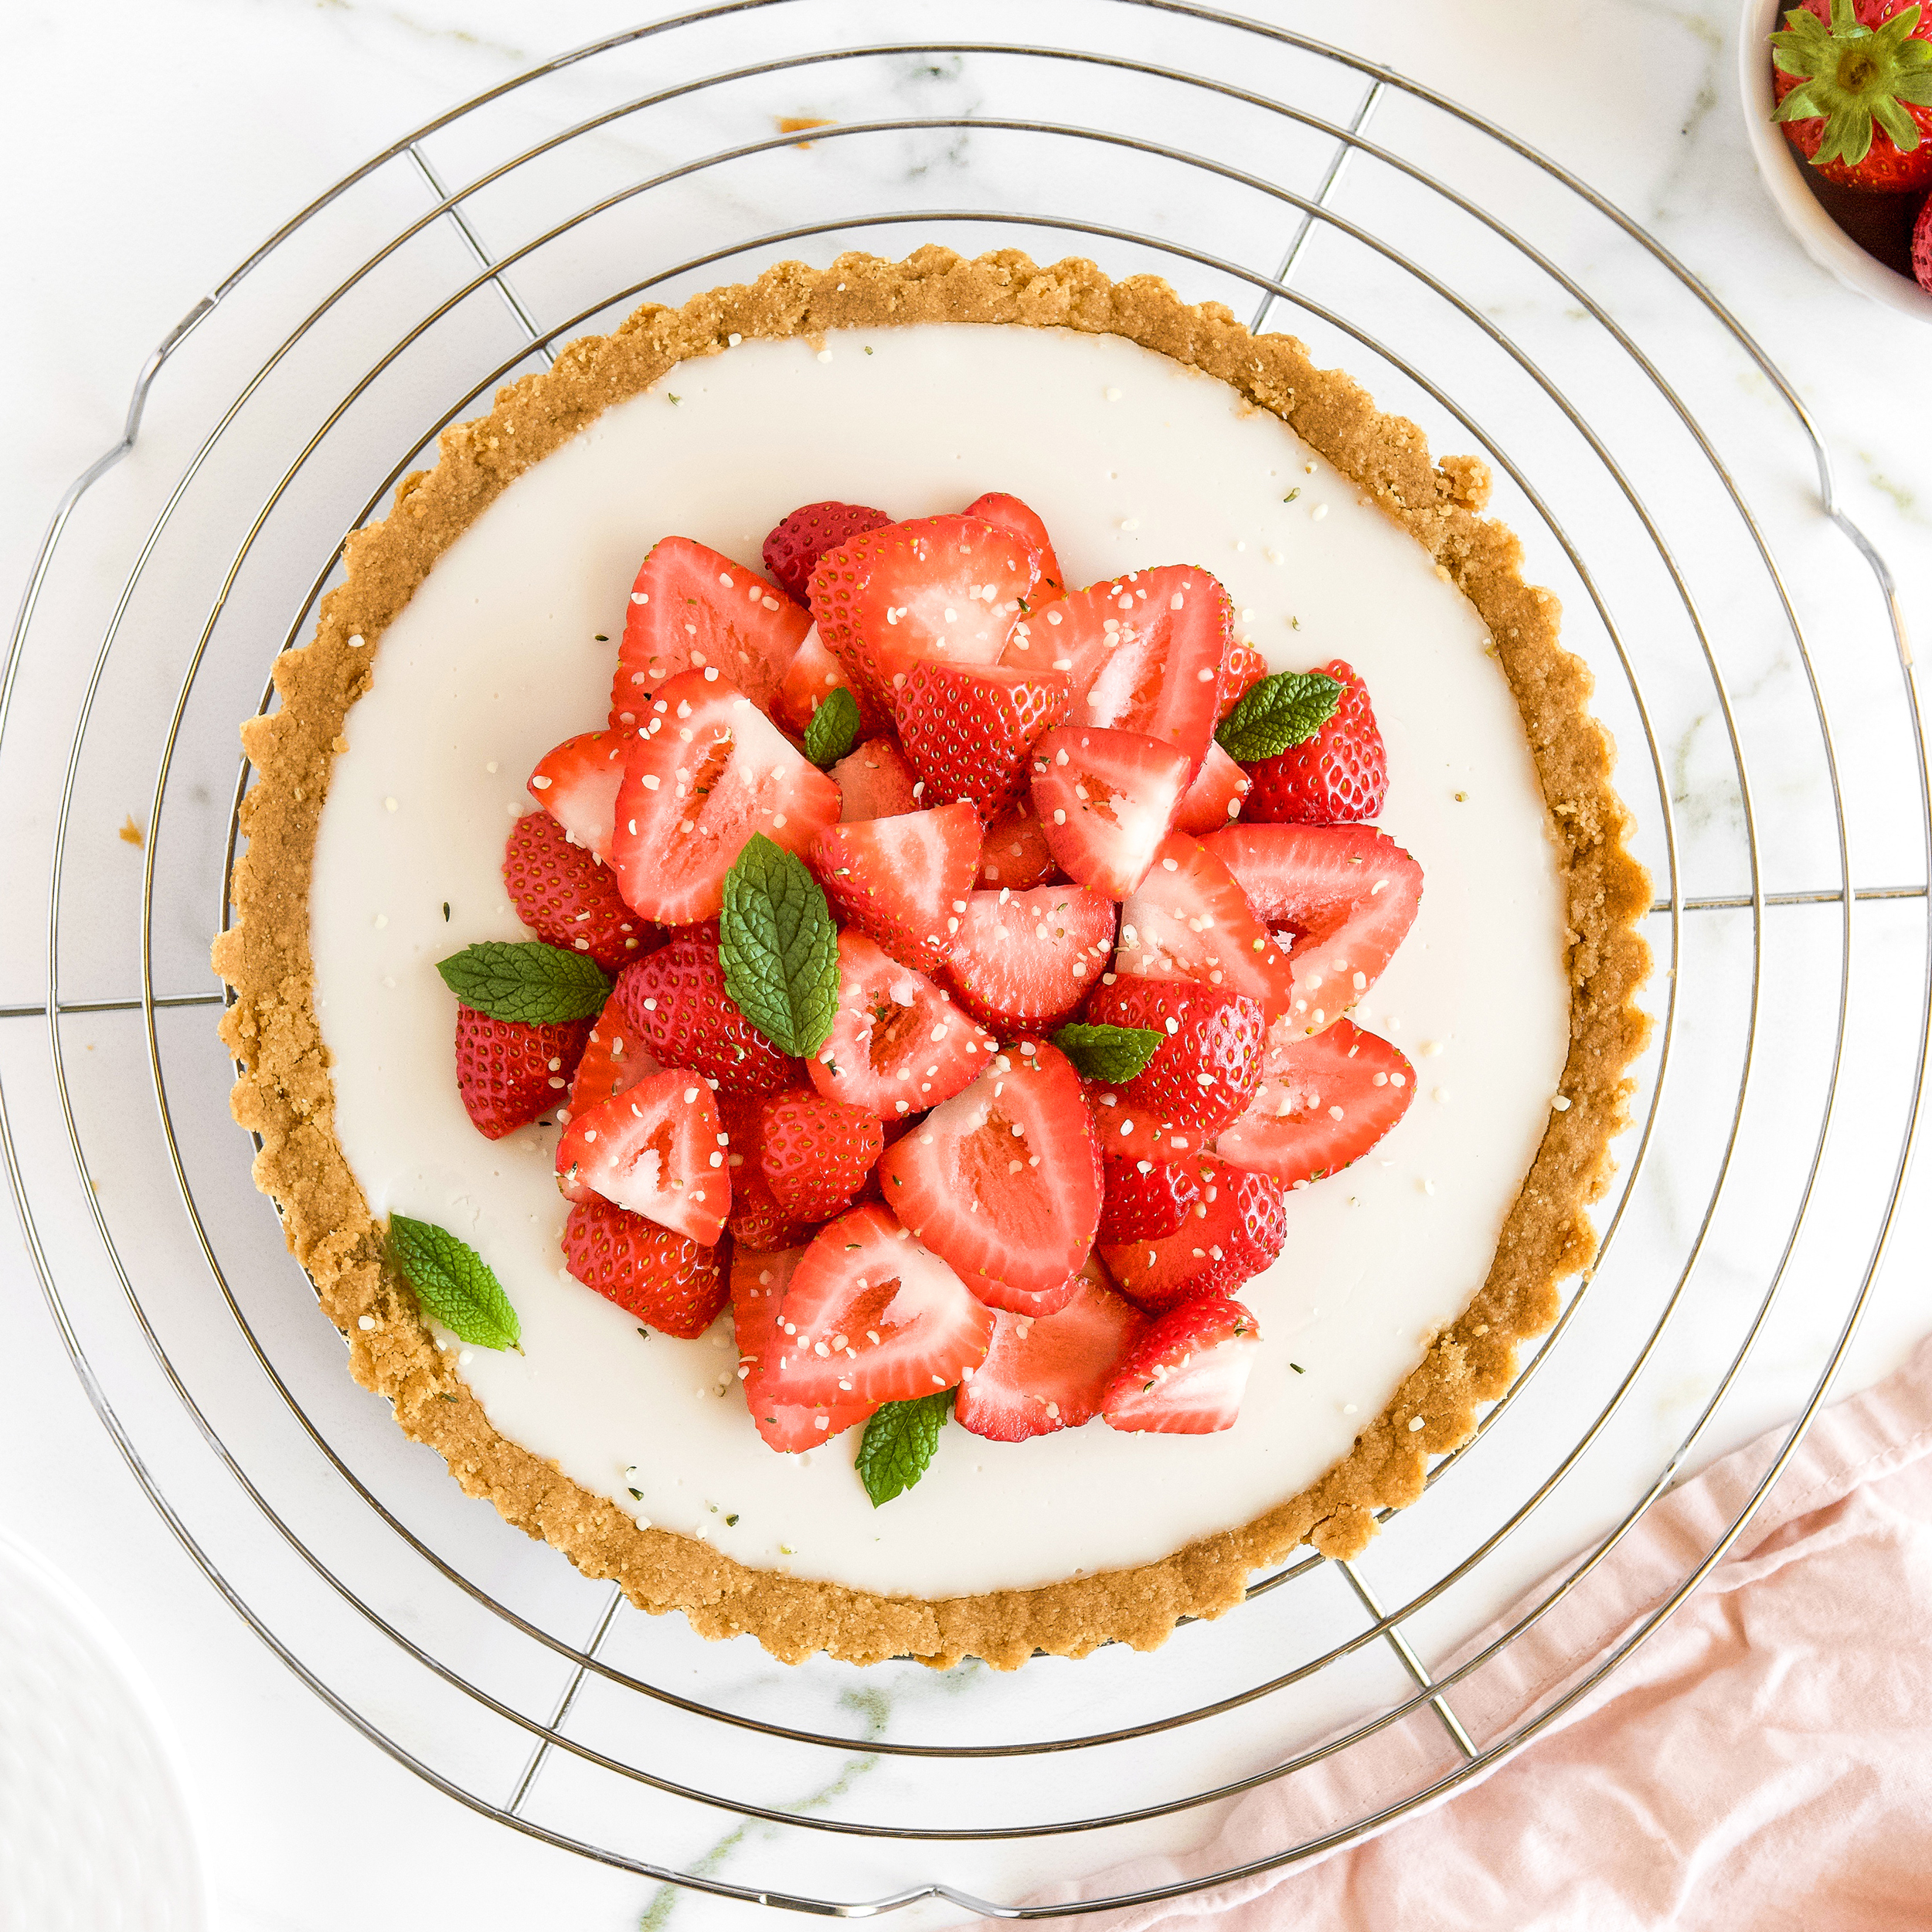 Vegan Strawberries and Cream Pie Recipe